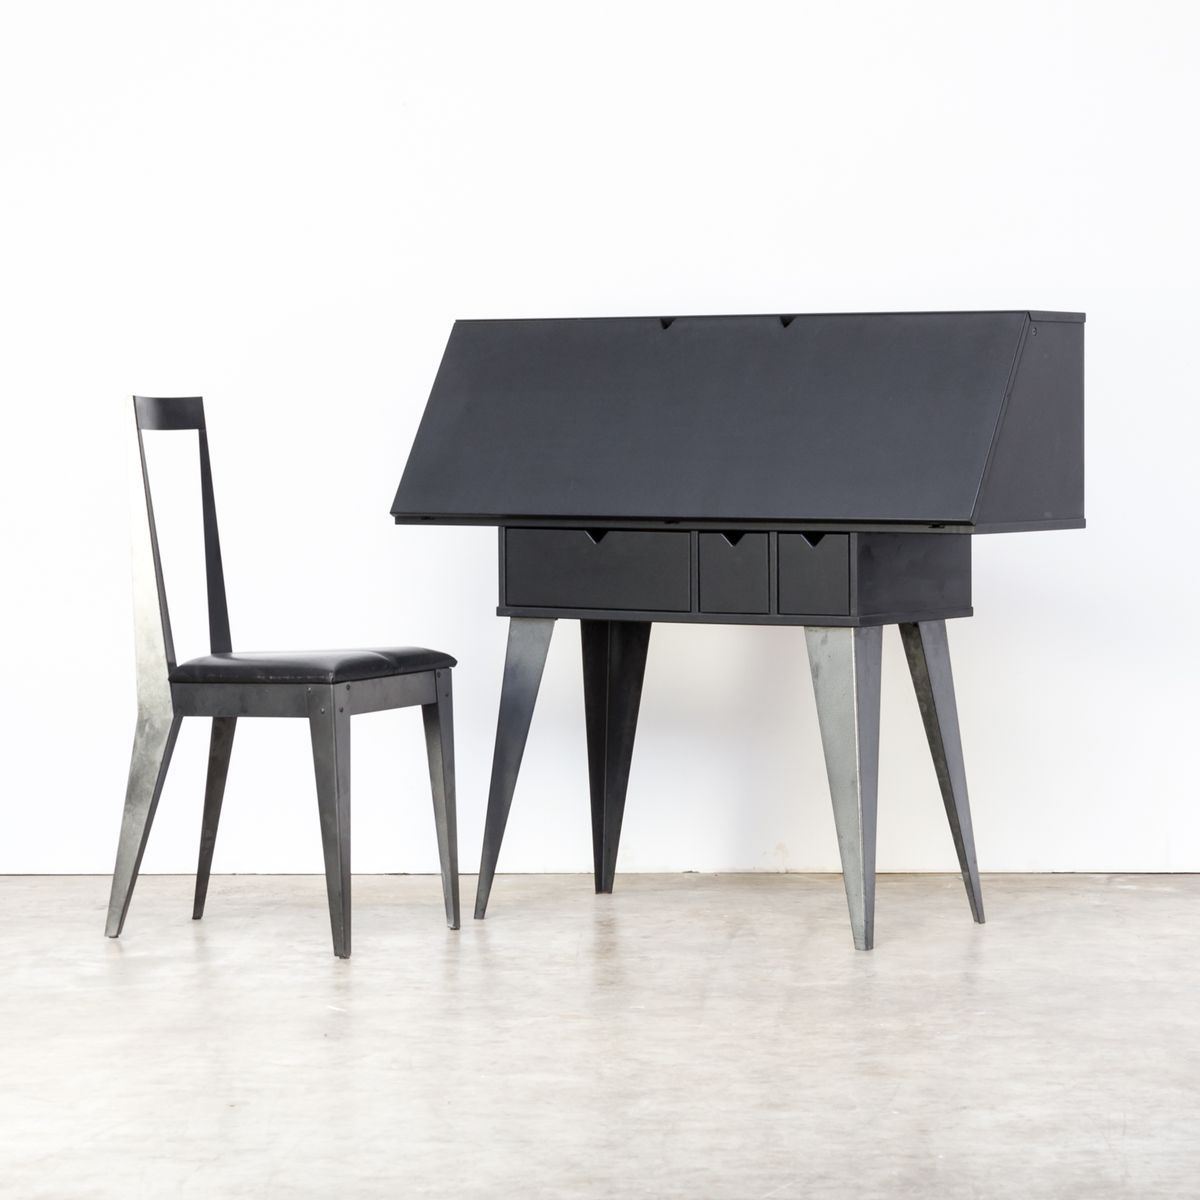 secretaire and chair by tjord bj rklund for ikea 1990s for sale at pamono. Black Bedroom Furniture Sets. Home Design Ideas